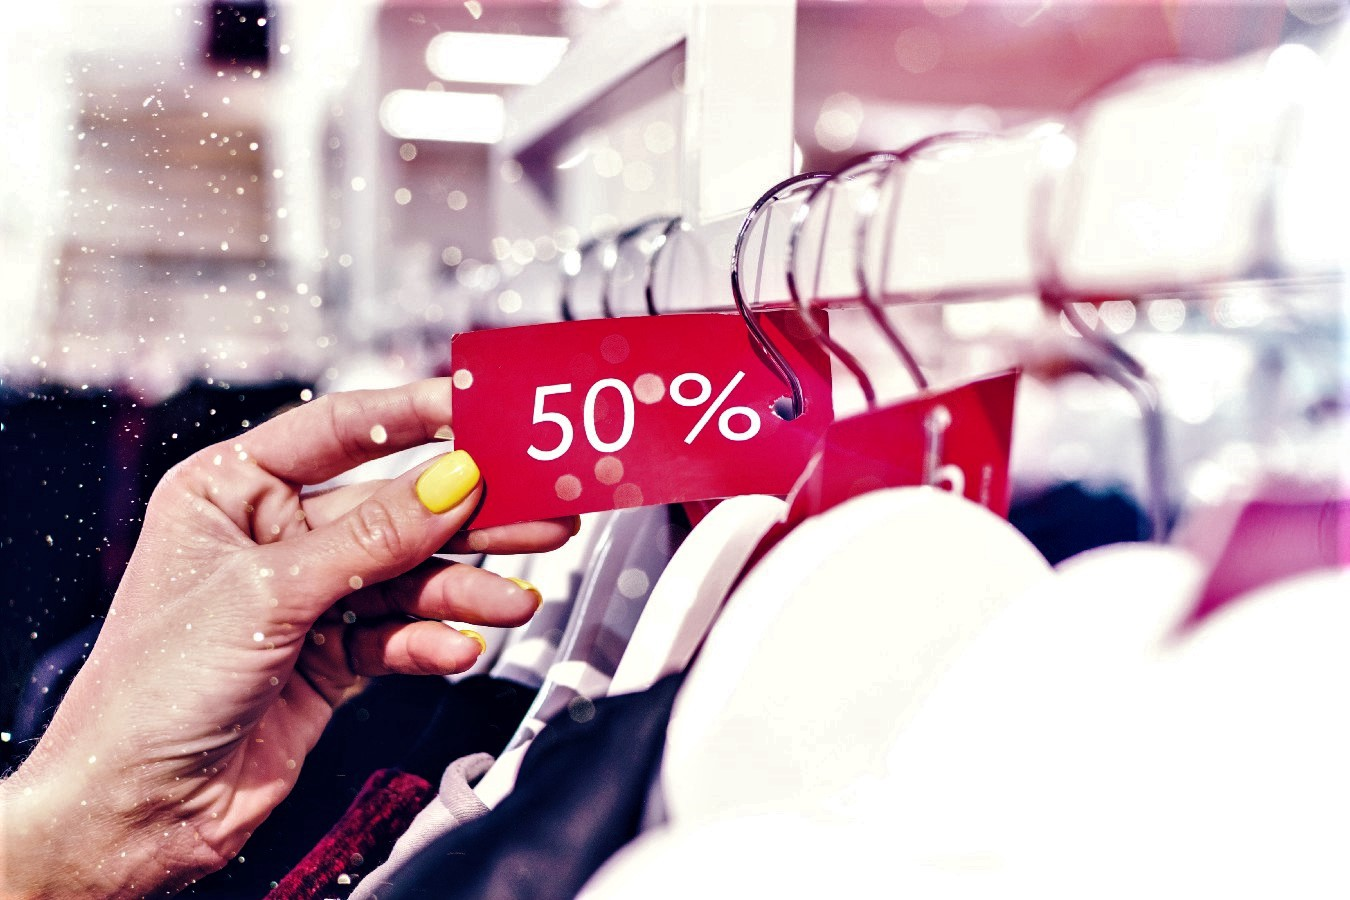 50% off sign on a clothing rack